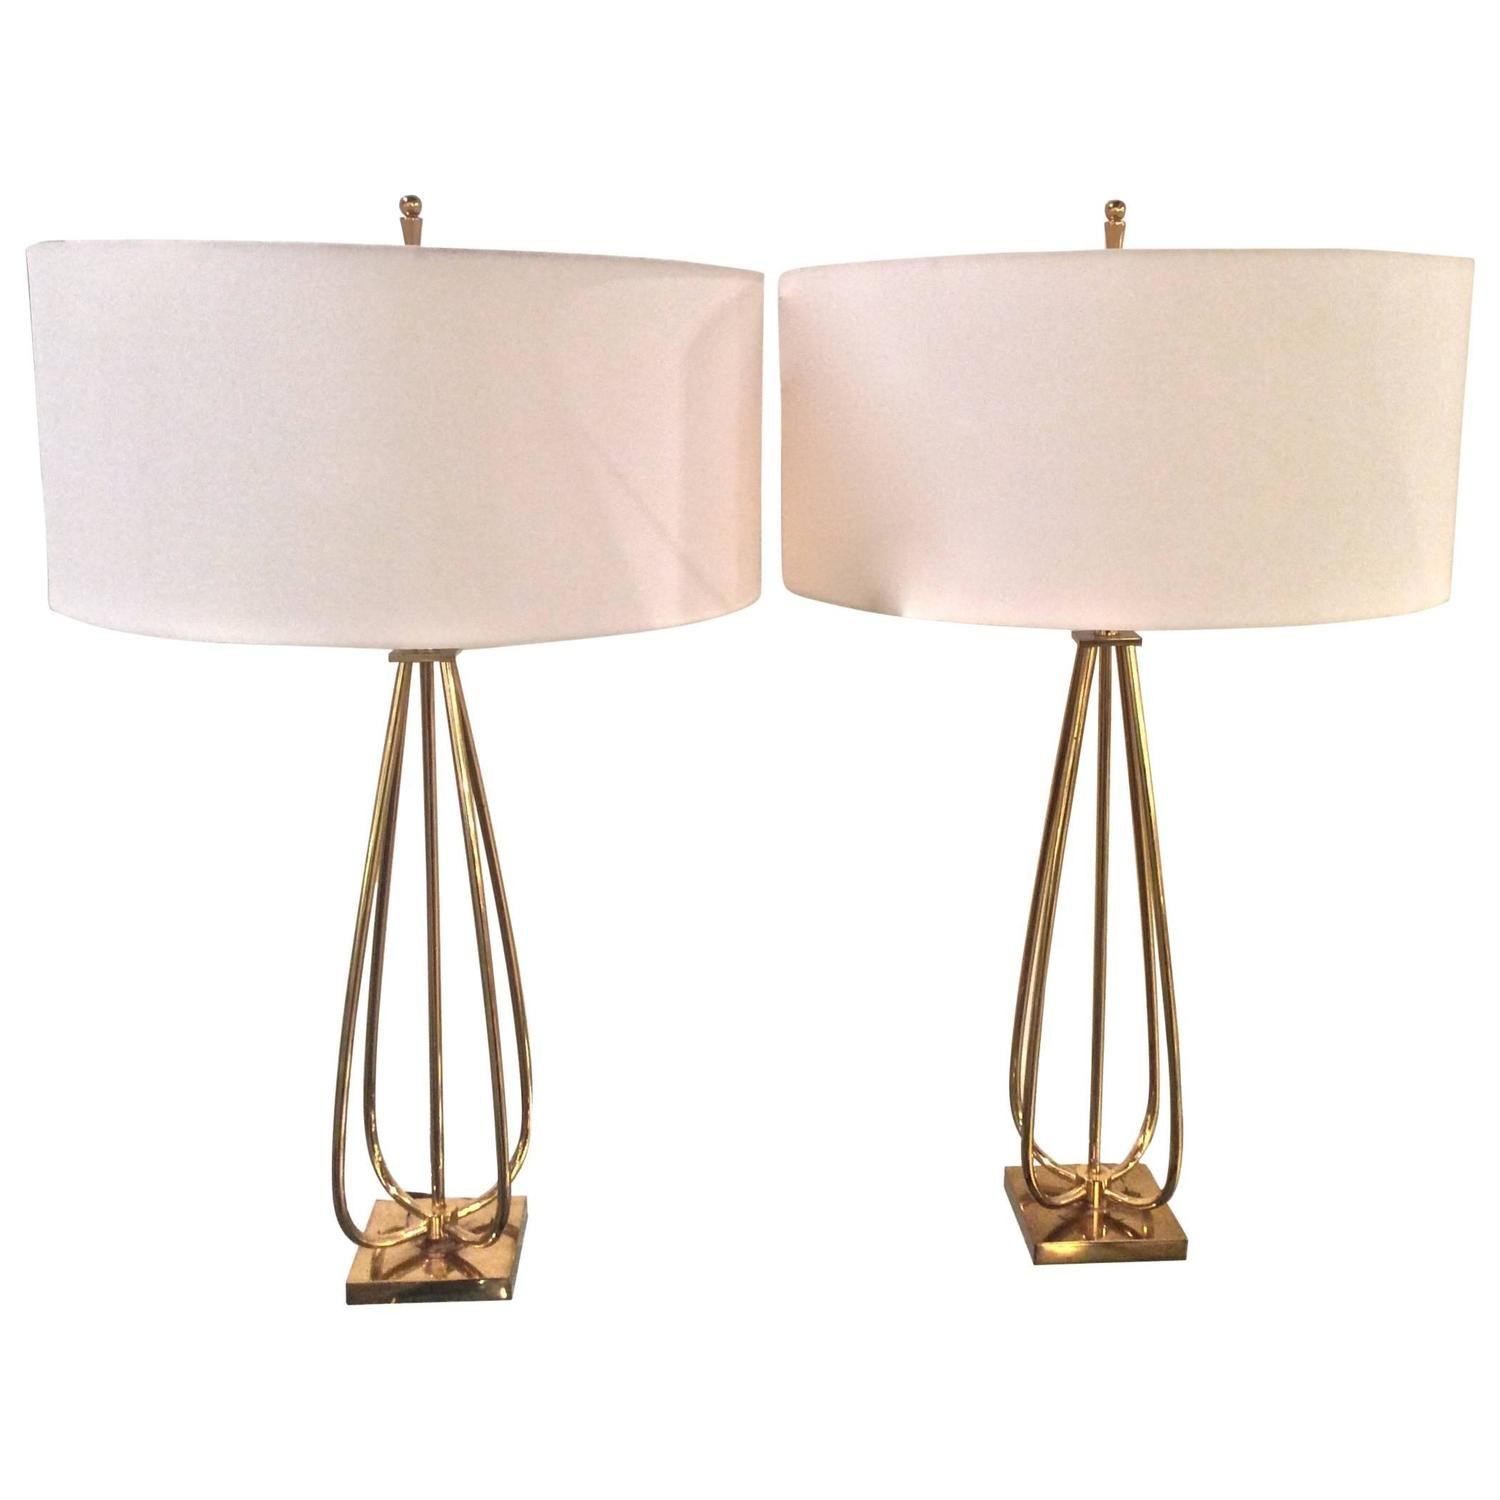 Mid century modern brass table lamps at 1stdibs for Modern contemporary table lamps